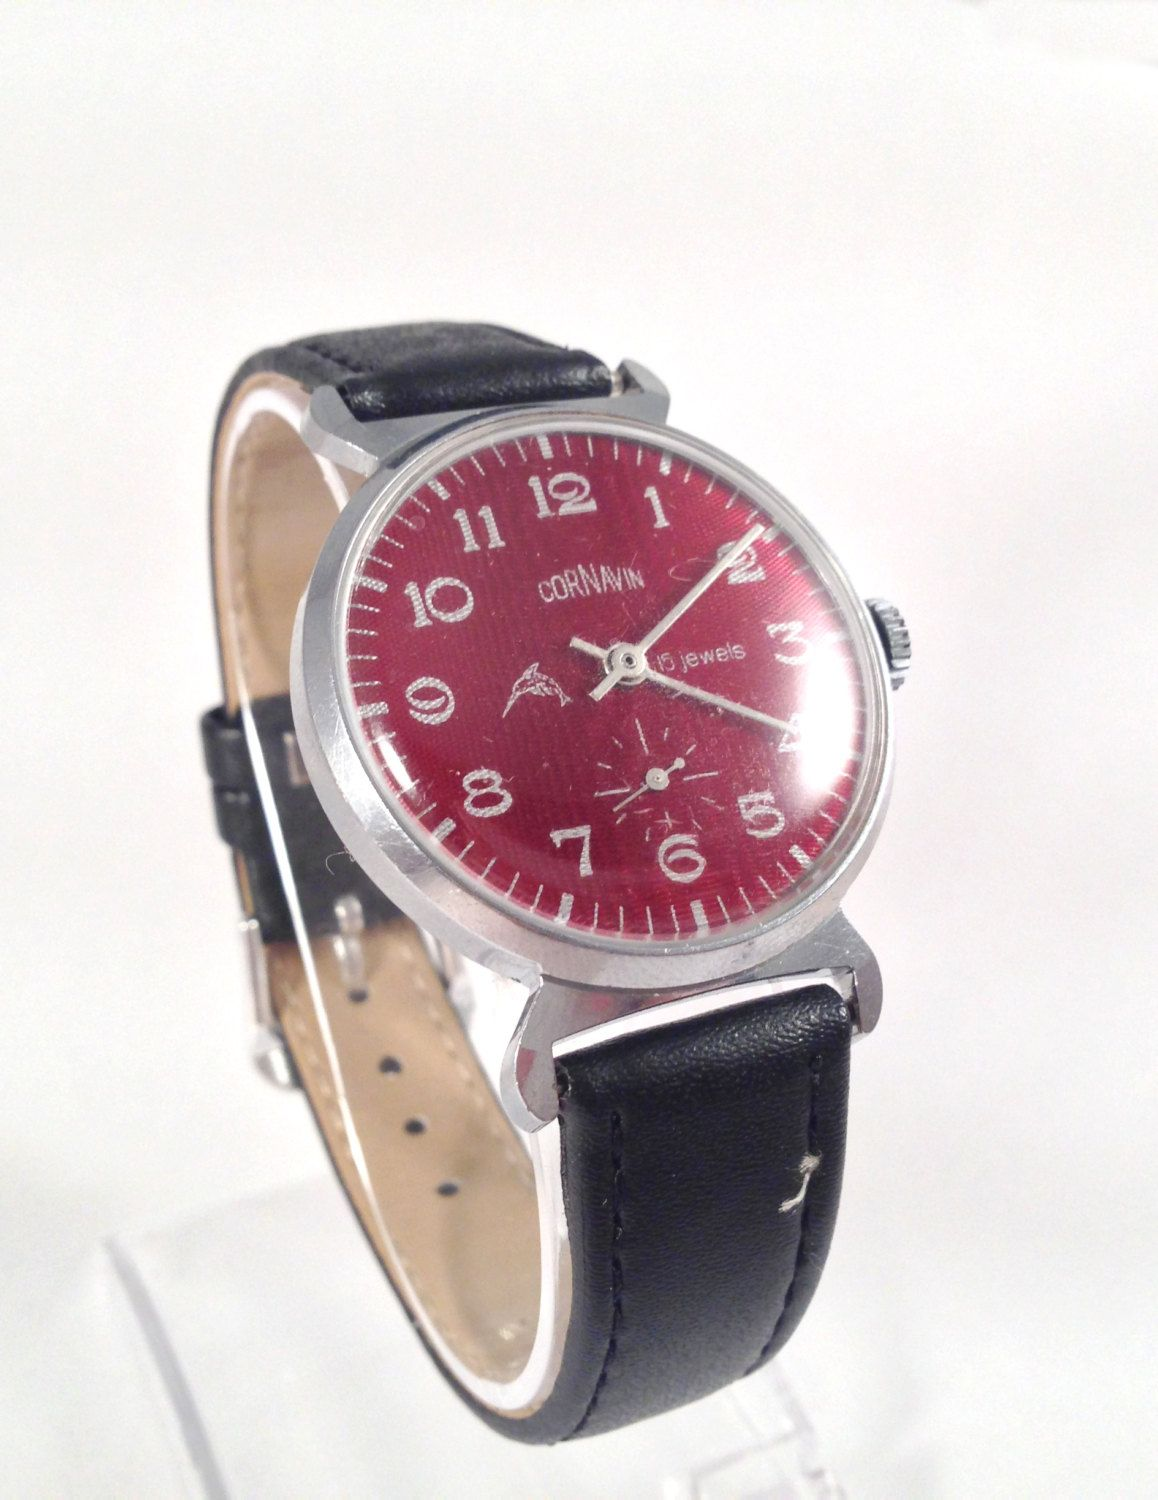 31667ca22c2 Old Soviet Watch, Cornavin 15 Jewels, 1980s Vintage Mens Watch, Mechanical  Hand Wind Watch, Red Dial Leather Strap, FREE STANDARD SHIPPING! by ...